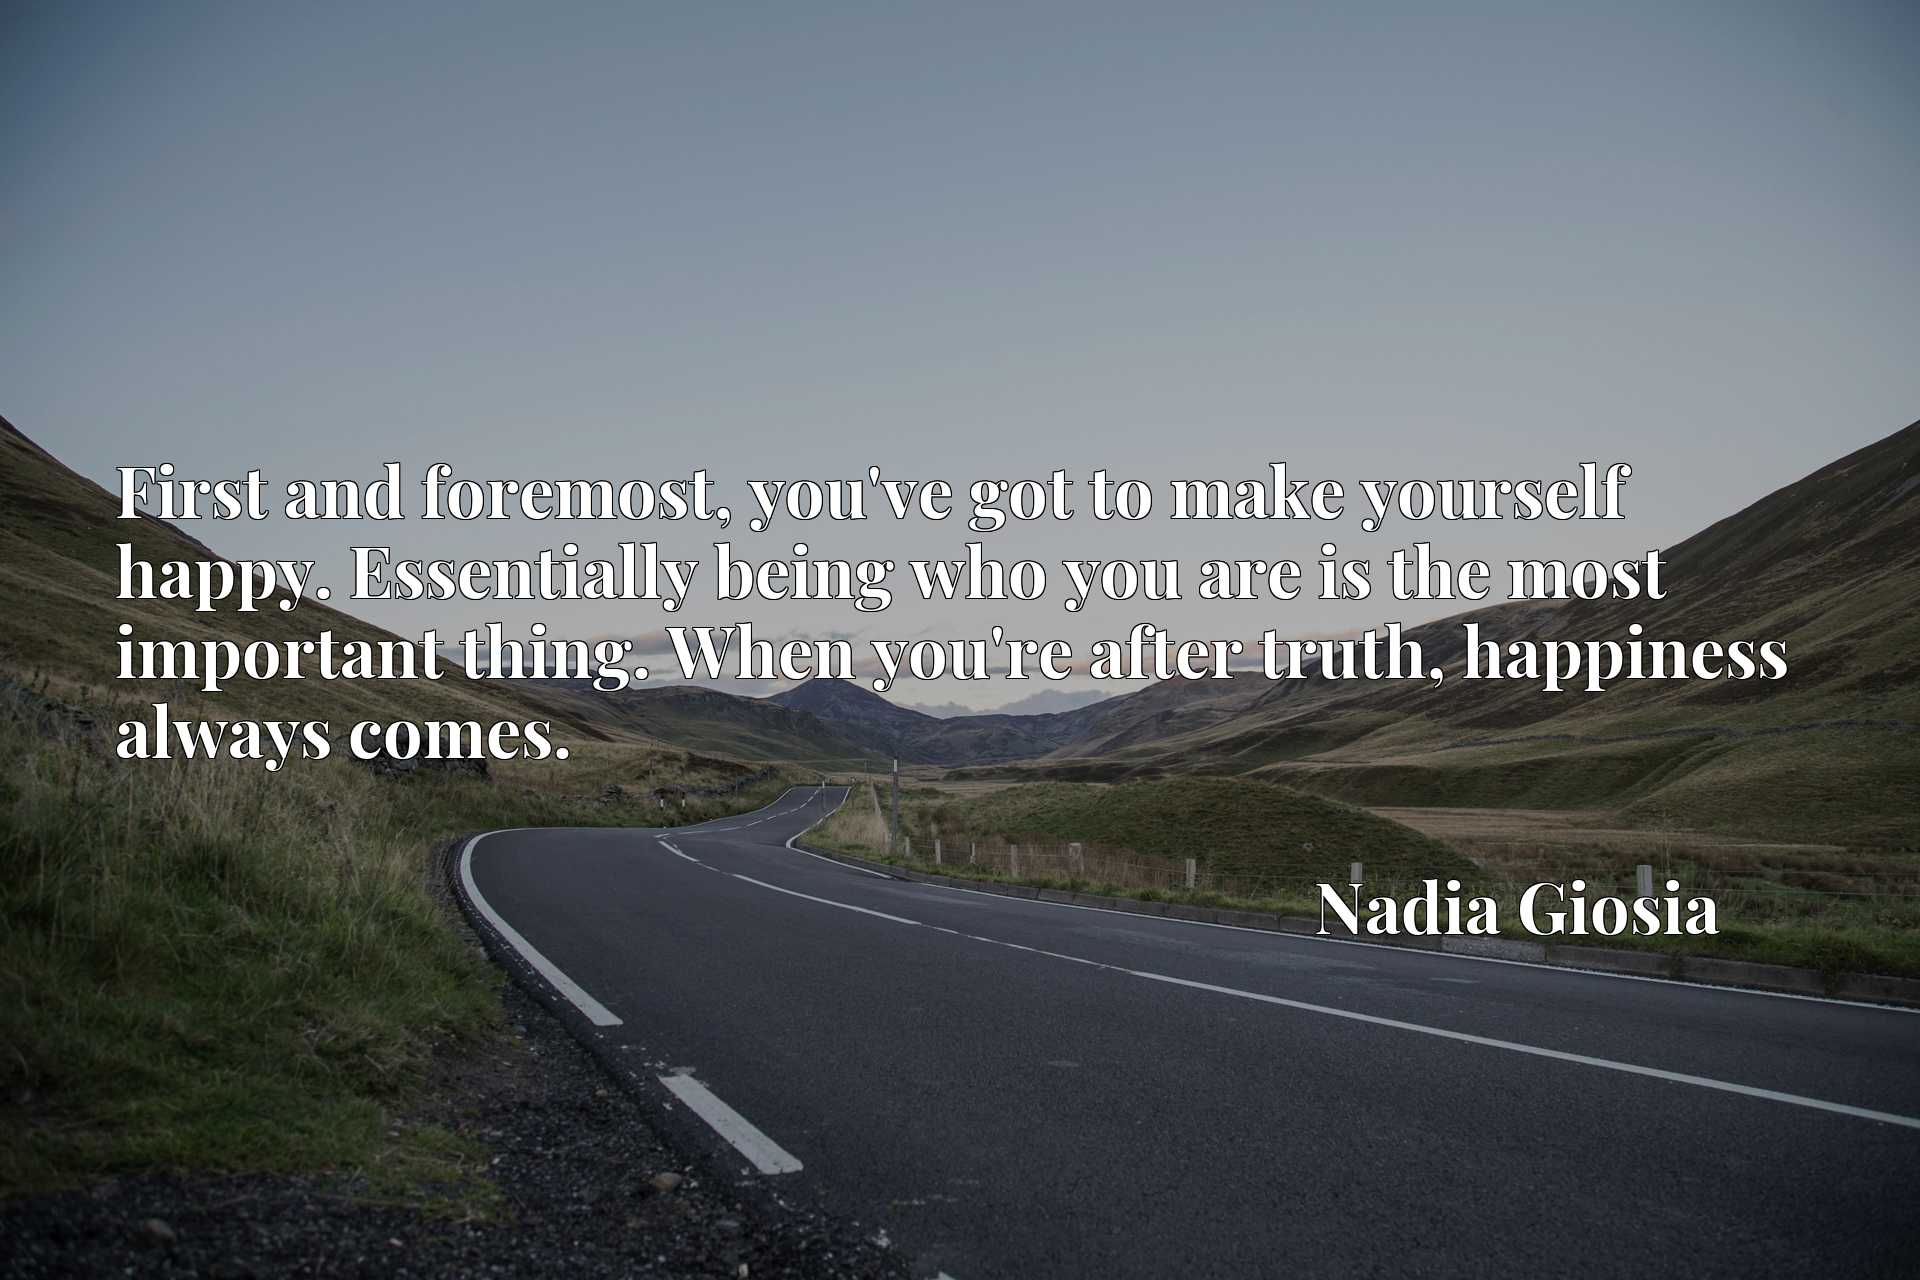 First and foremost, you've got to make yourself happy. Essentially being who you are is the most important thing. When you're after truth, happiness always comes.